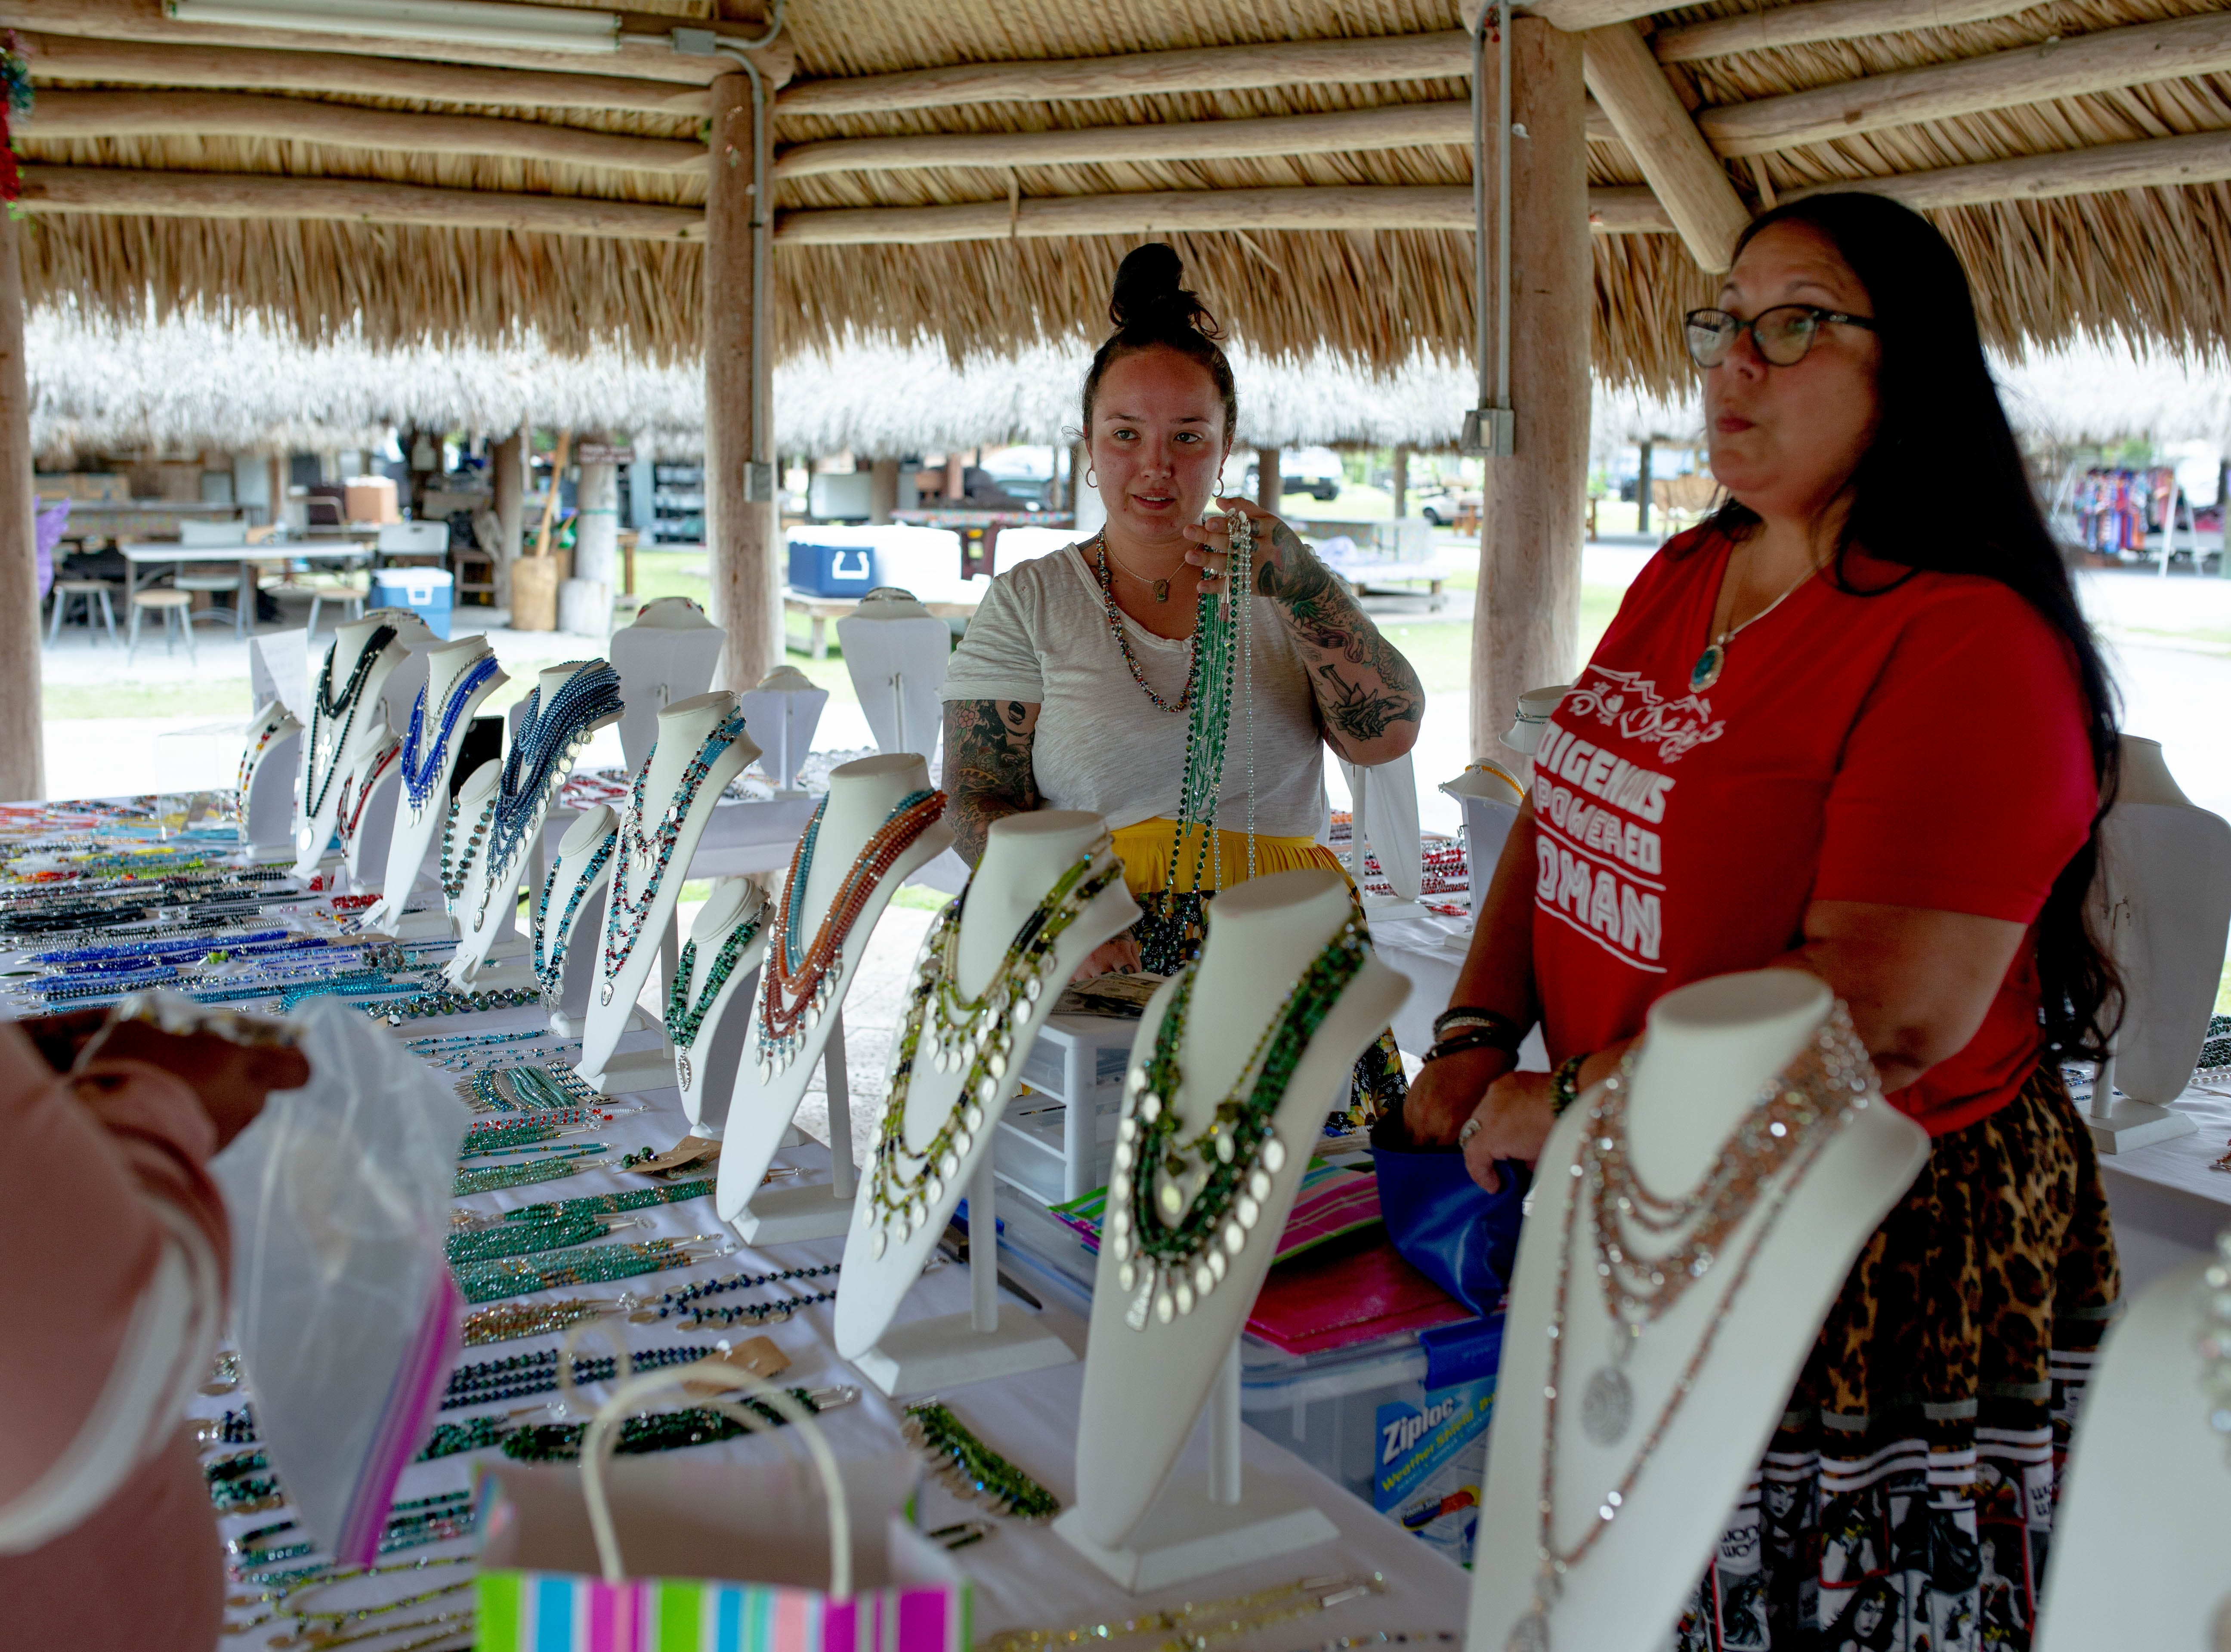 Dakota and Tina Osceola sell jewelry together at the Osceola Village on the Miccosukee Reservation on May 5, 2019. The mother and daughter make jewelry individually and often sell it together at events and locations across Southwest Florida.